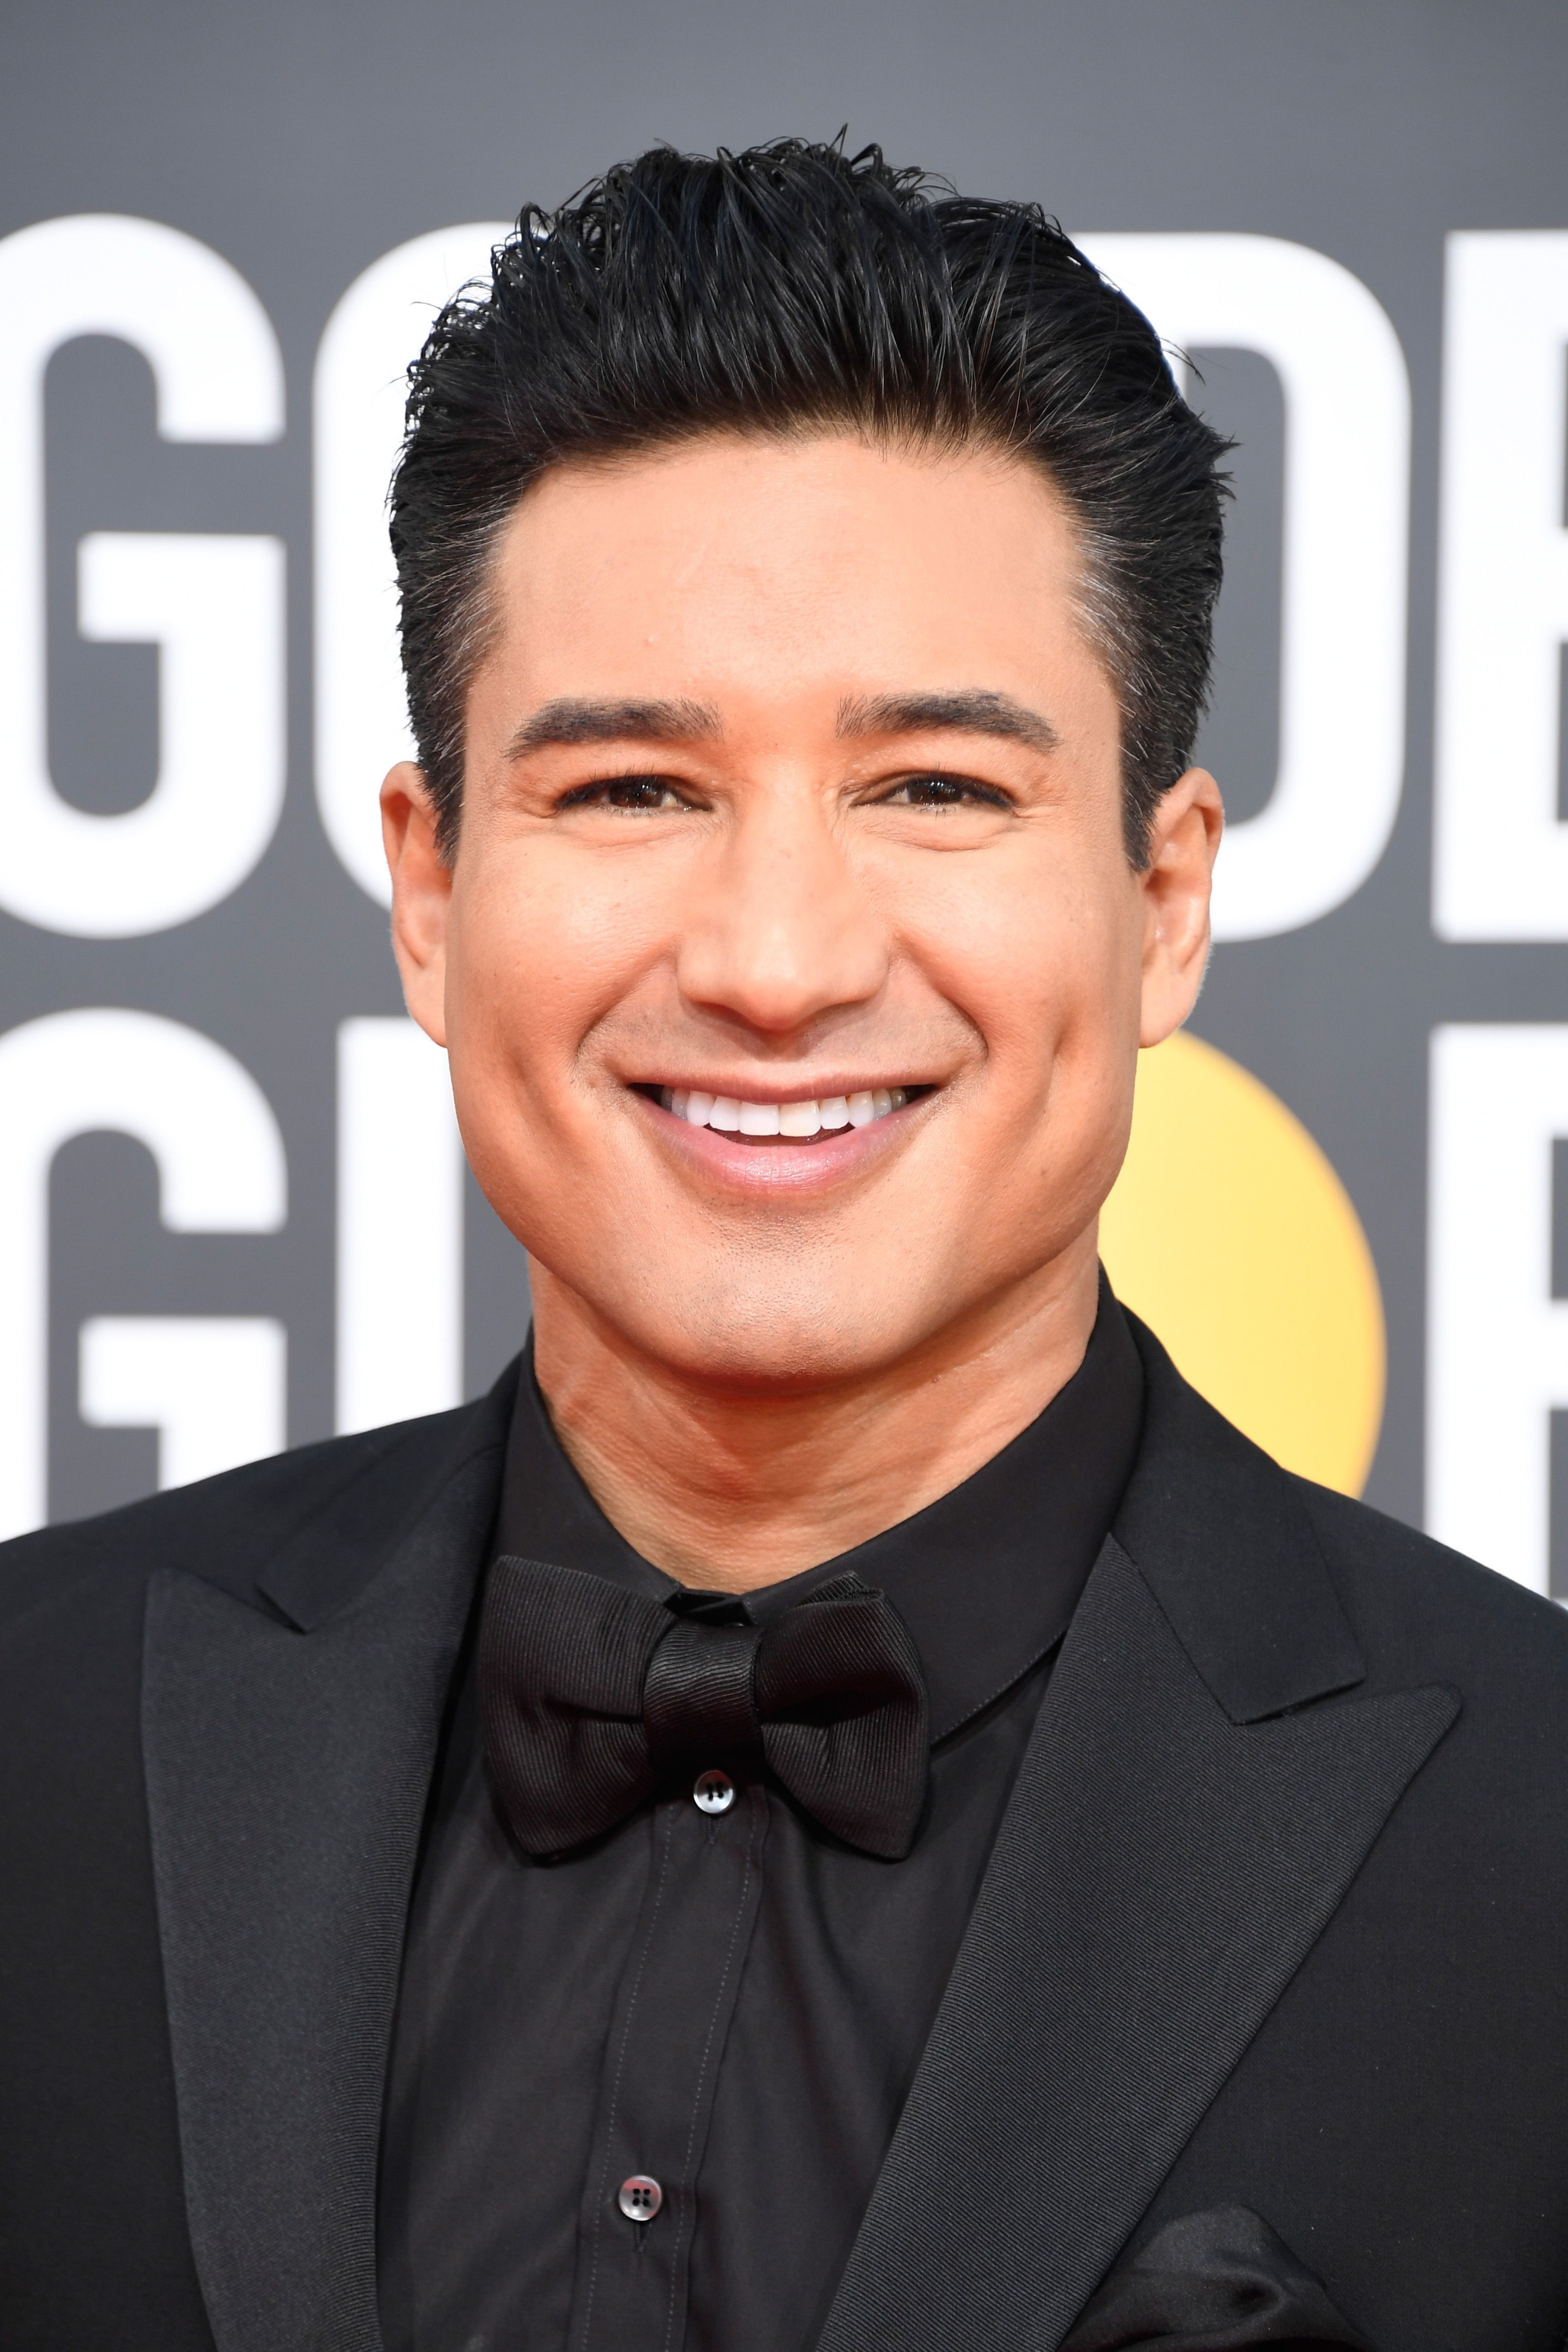 Mario Lopez Starred In The Series Saved By The Bell There Was A Cast Reunion Where They All Met Up For Dinner Last Wee Saved By The Bell It Cast Mario